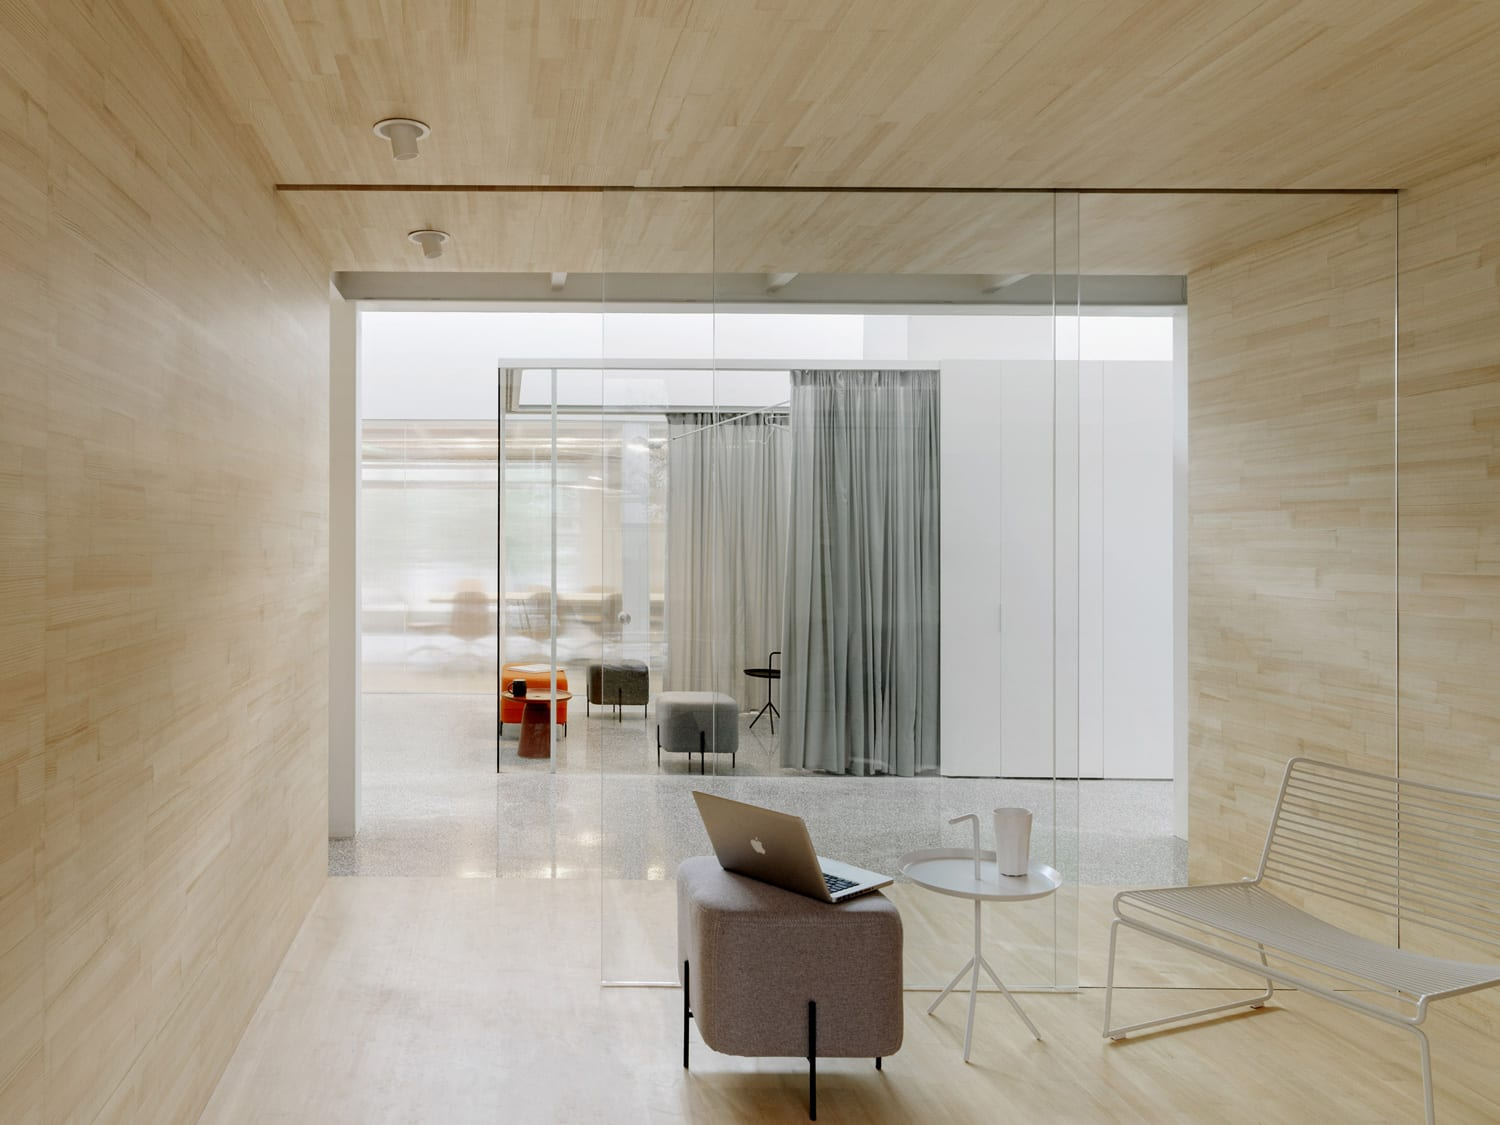 MDDM Studio Converts Beijing Textile Factory into an Office for Film Production Company | Yellowtrace